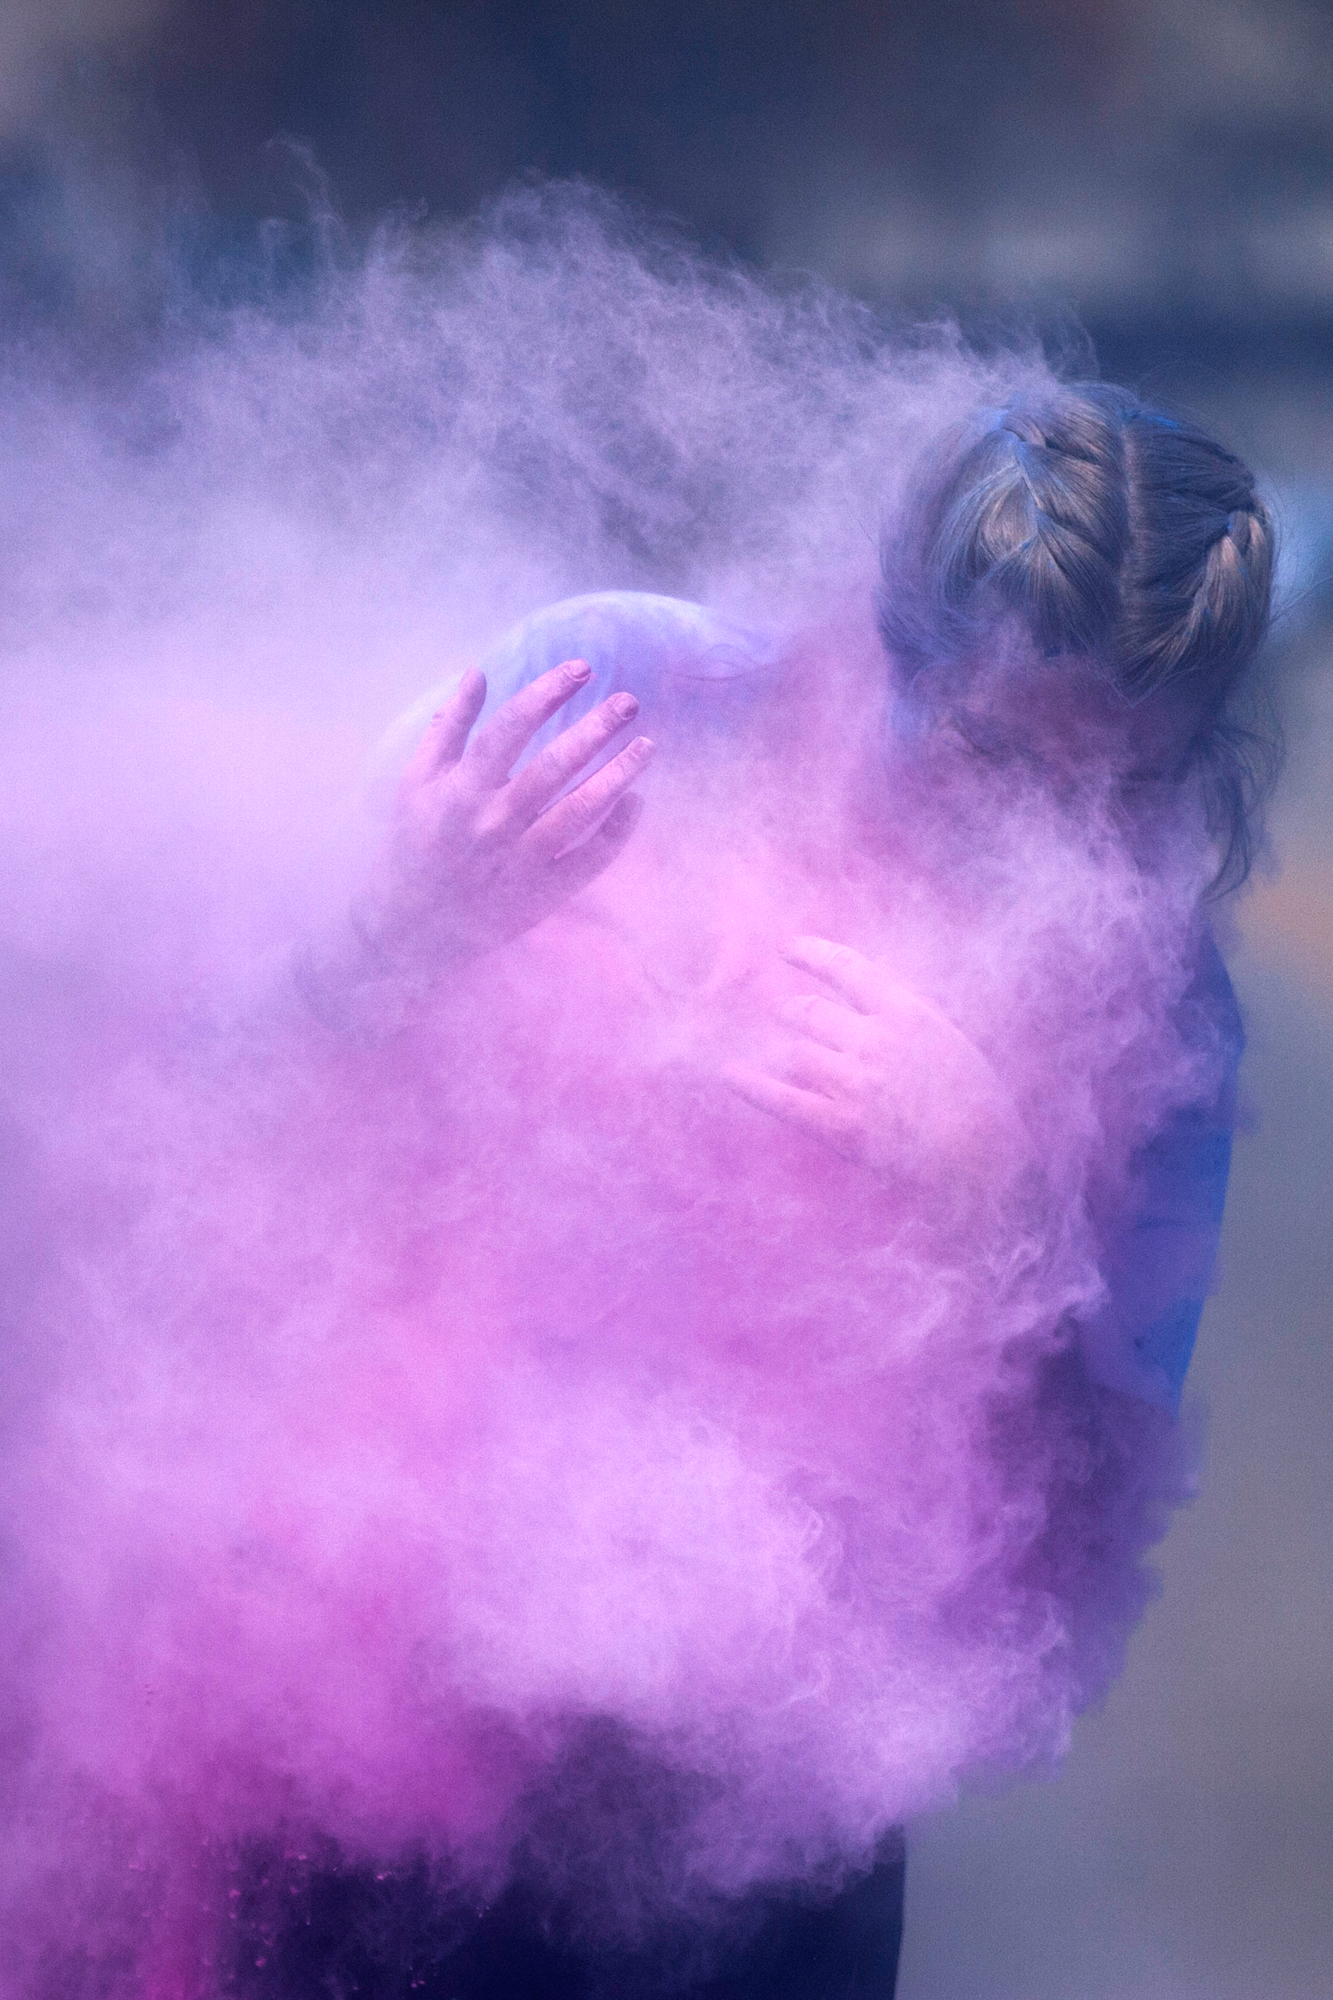 Linnea Sayler, a staffer from the Rockford YMCA, is covered in a cloud of colored chalk by a co-worker while staffing the half-mile Color Fun Run component of the YMCA Heritage Run event on Saturday, April 28, 2018, on the East State Street bridge in Rockford. [SCOTT P. YATES/RRSTAR.COM STAFF]